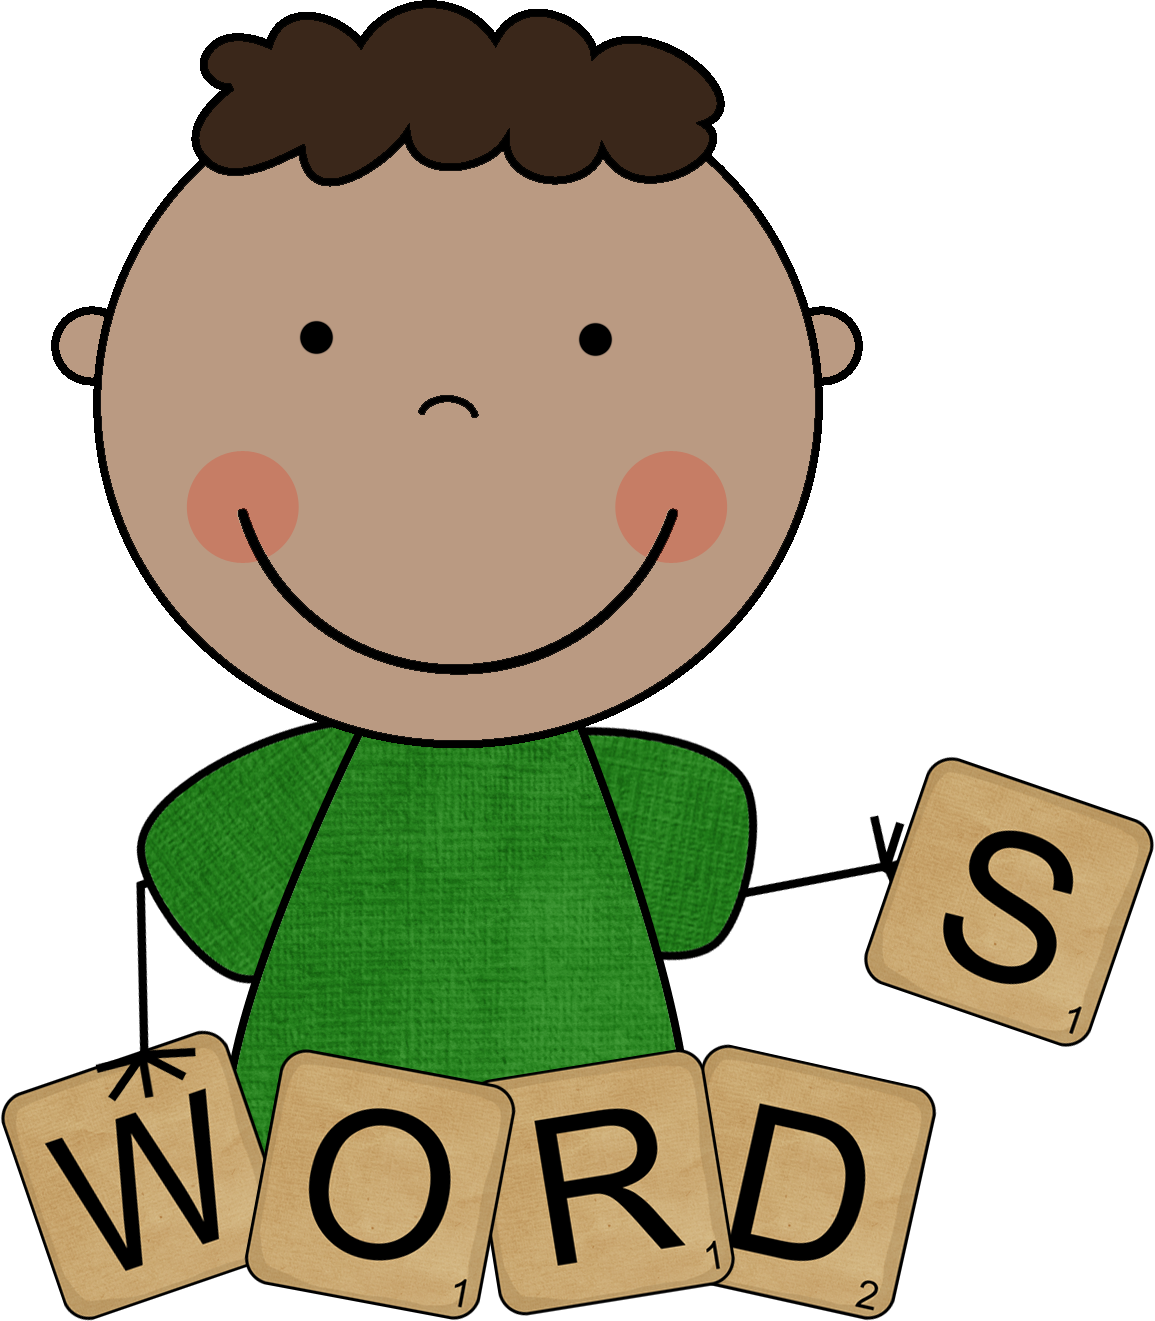 Hasbro Claims Copyright to Scrabble Dictionary/Word Lists | Beyond ...